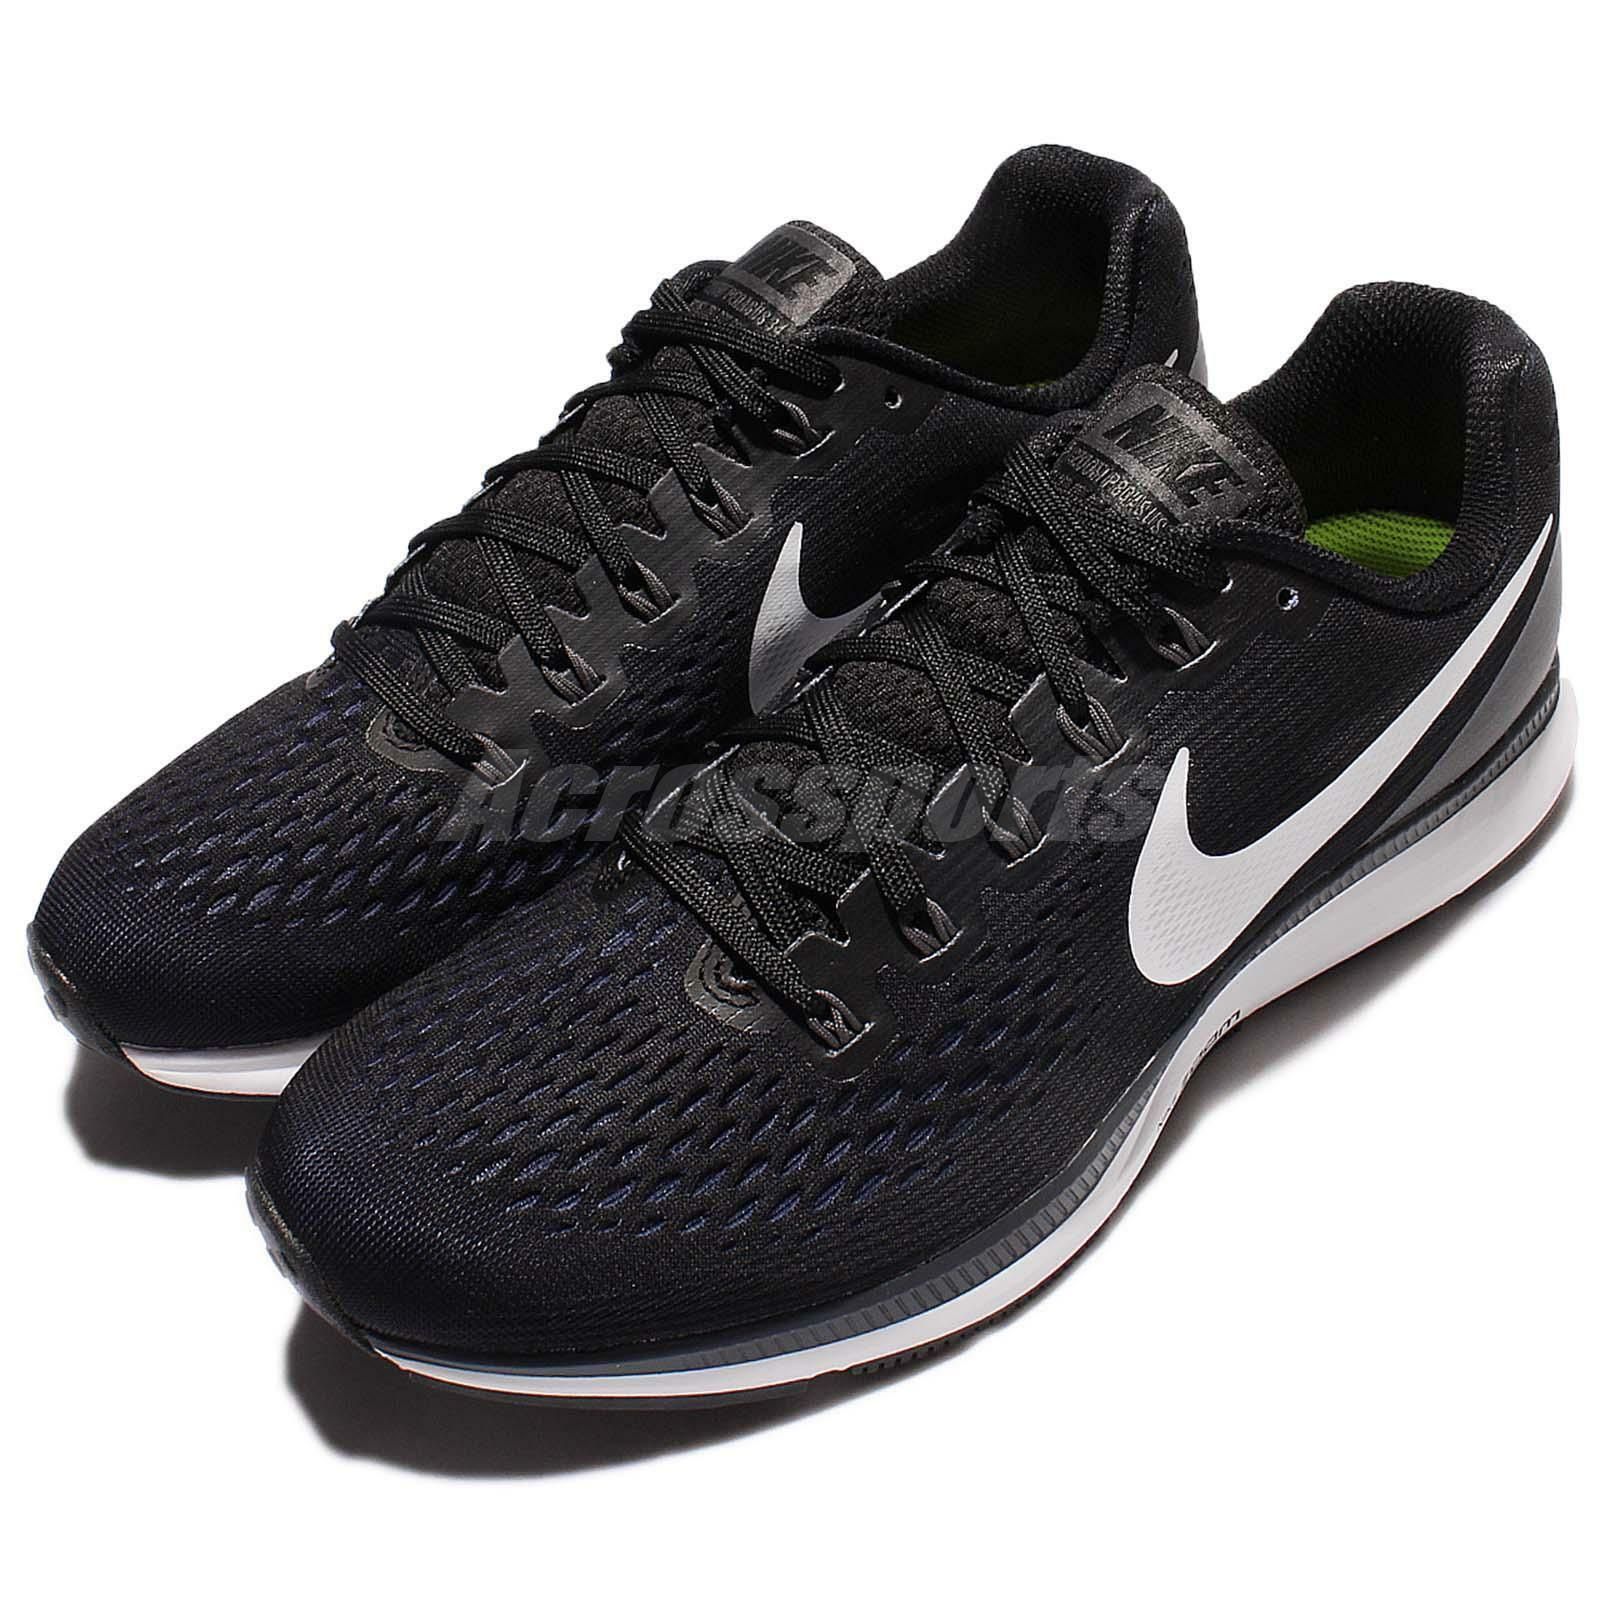 NIB Nike Air Zoom Pegasus 34 Black White Men Running shoes Sneakers 880560-001